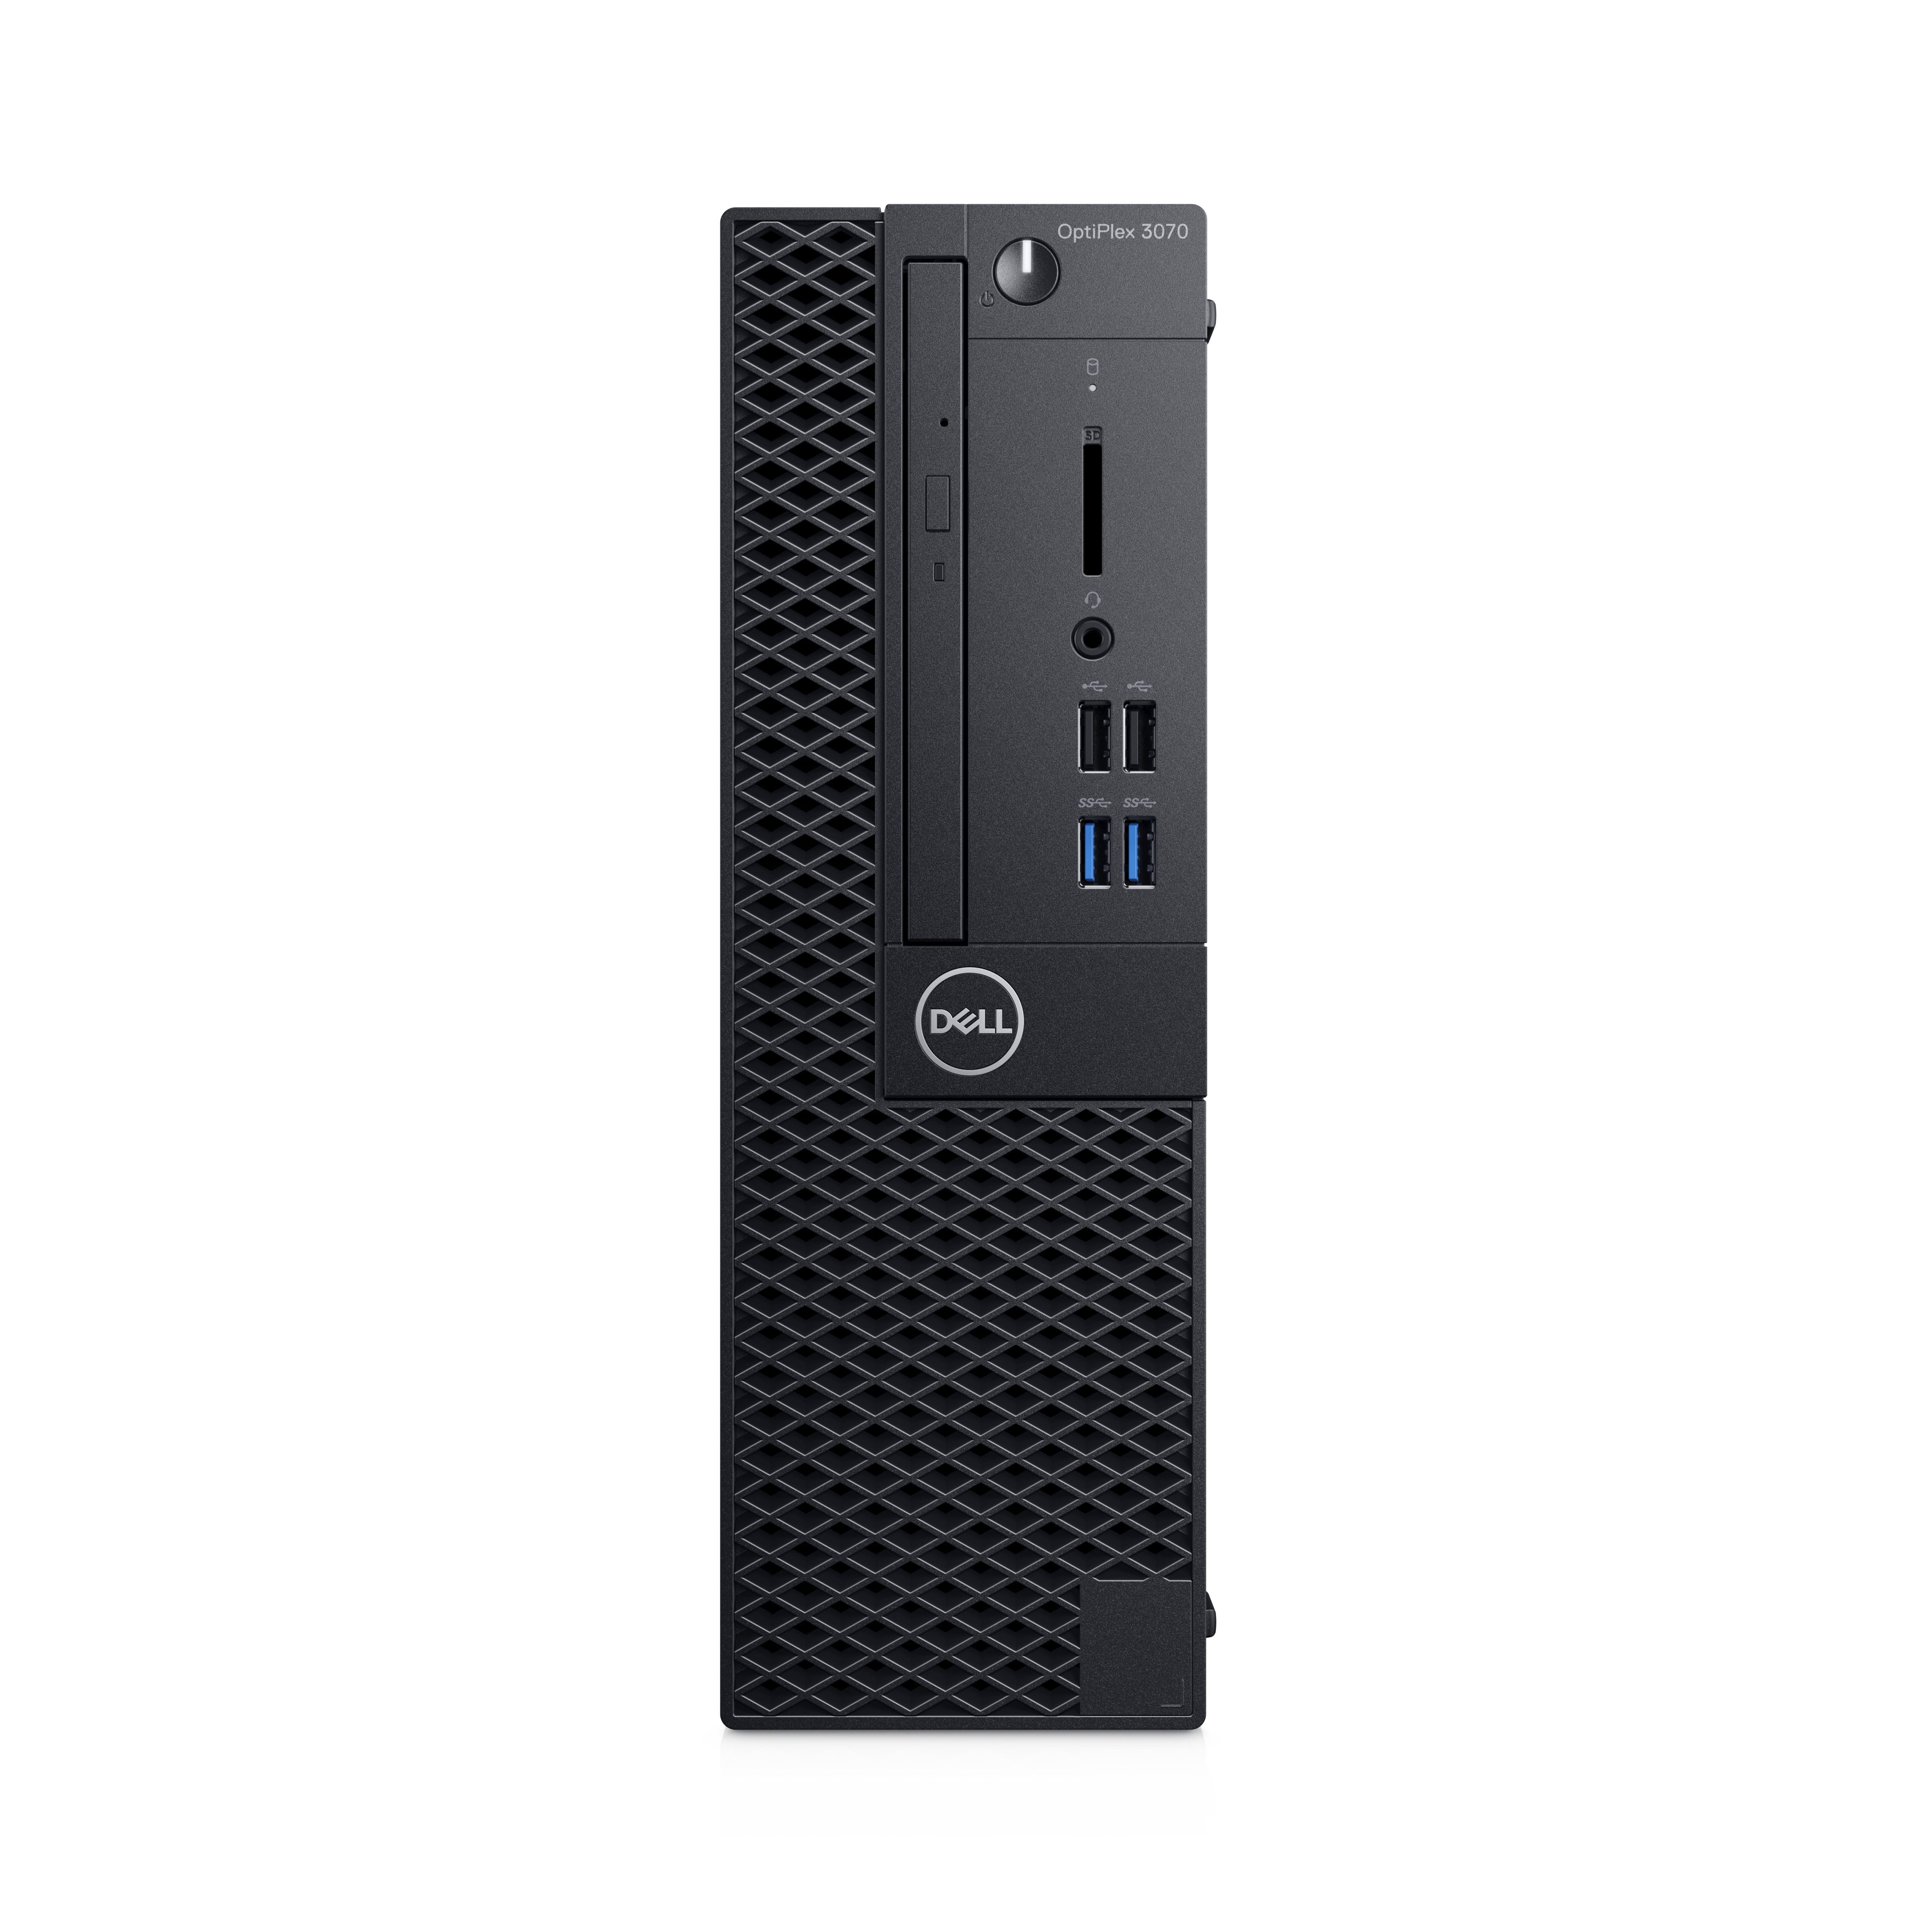 Dell OptiPlex 3070 SFF 7KTHG i3-9100 4GB/1TB DVD-RW W10P